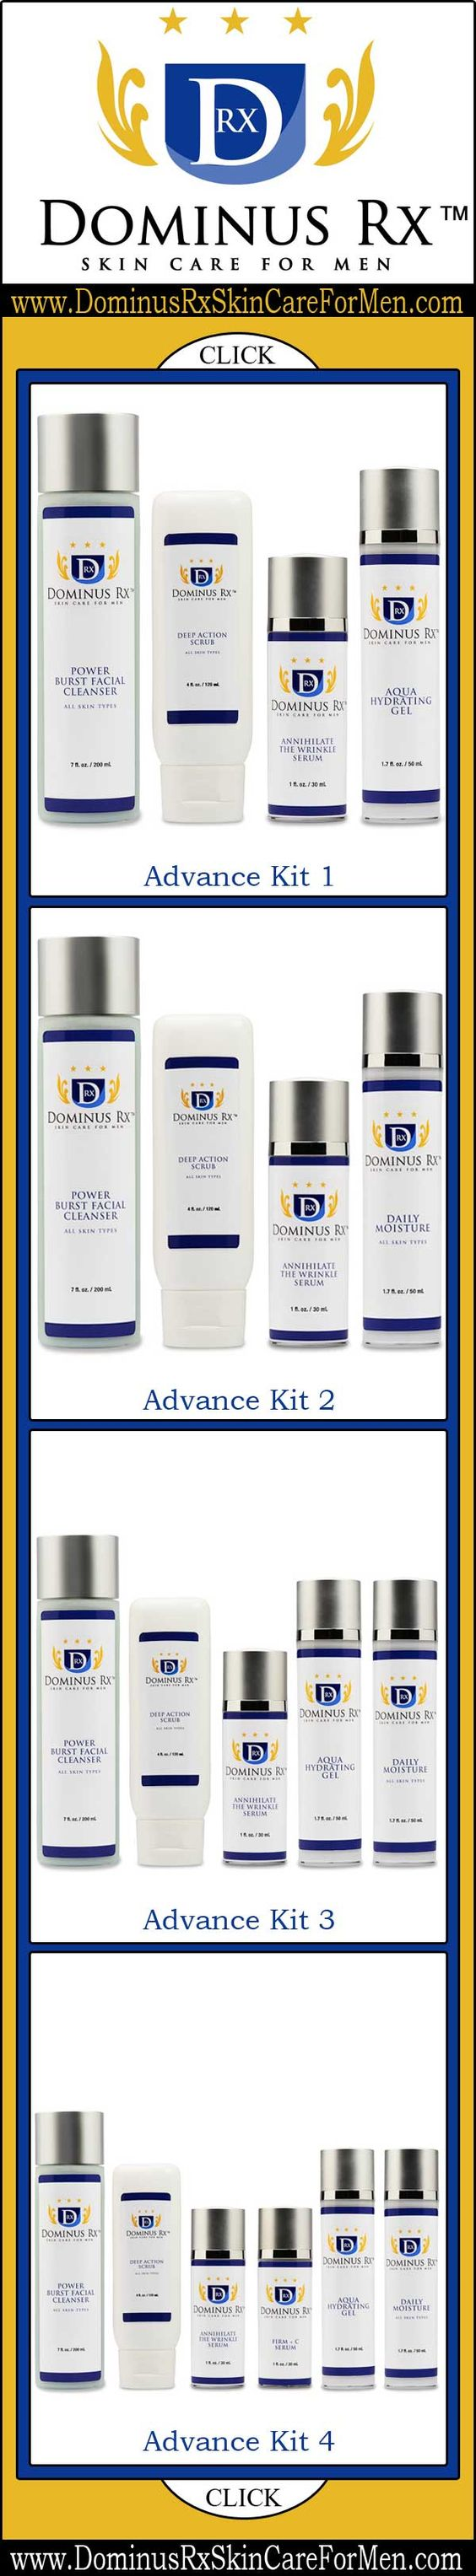 Mens Skincare - Skincare for Men ♦ You deserve a fighting chance to look your best with products you can trust and rely on to get the job done. - Dominus Rx Skin Care for Men - http://www.dominusrxskincareformen.com/